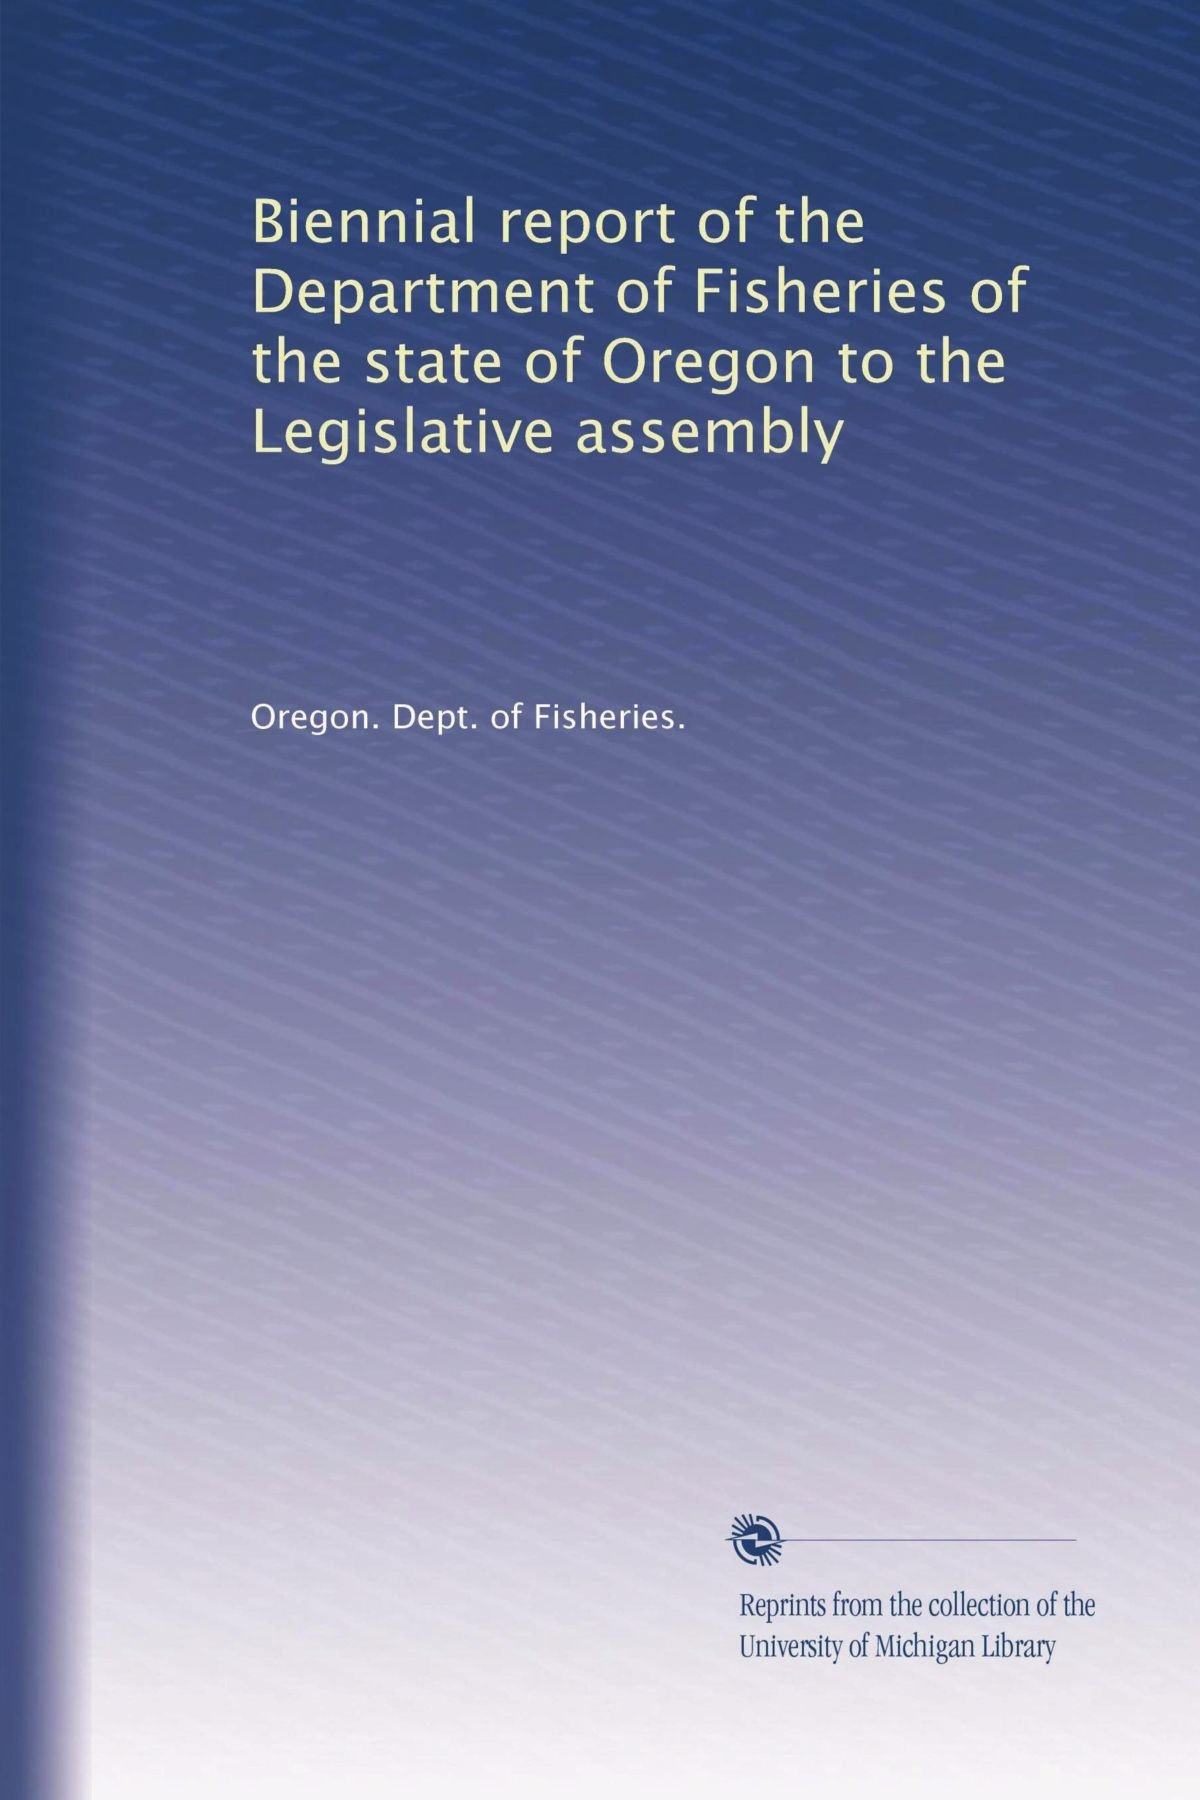 Read Online Biennial report of the Department of Fisheries of the state of Oregon to the Legislative assembly (Volume 4) pdf